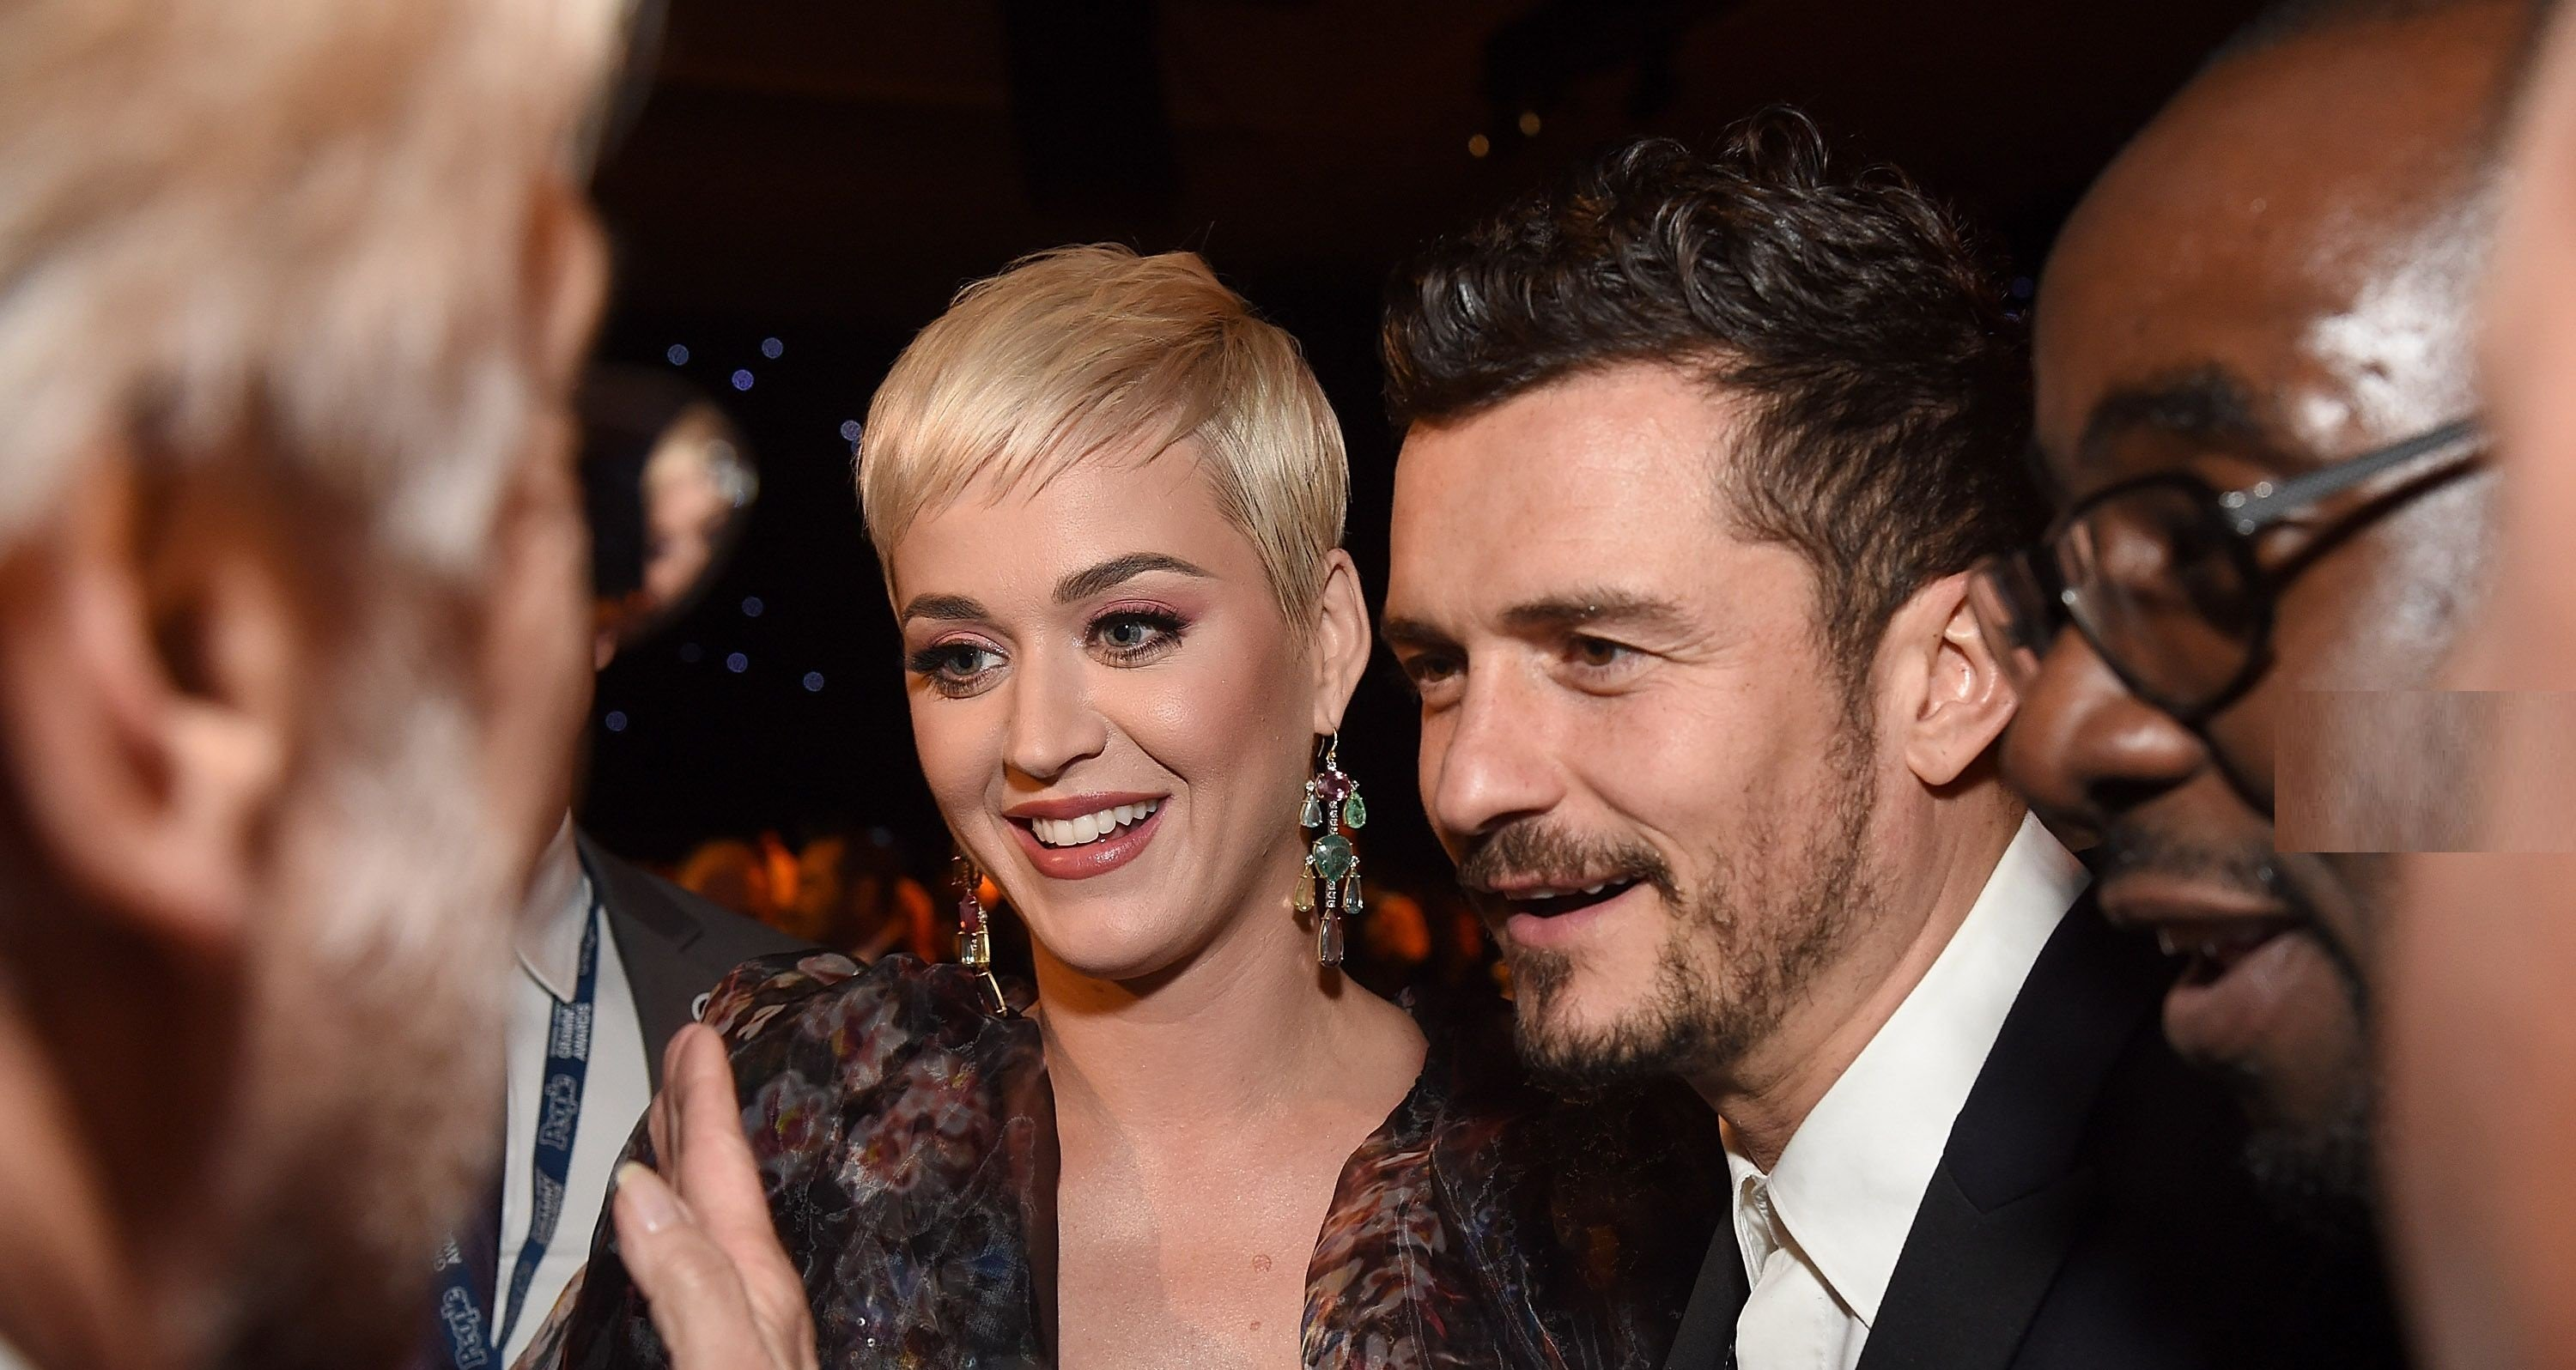 Katy Perry and Orlando Bloom attend MusiCares Person of the Year honoring Dolly Parton / Getty Images